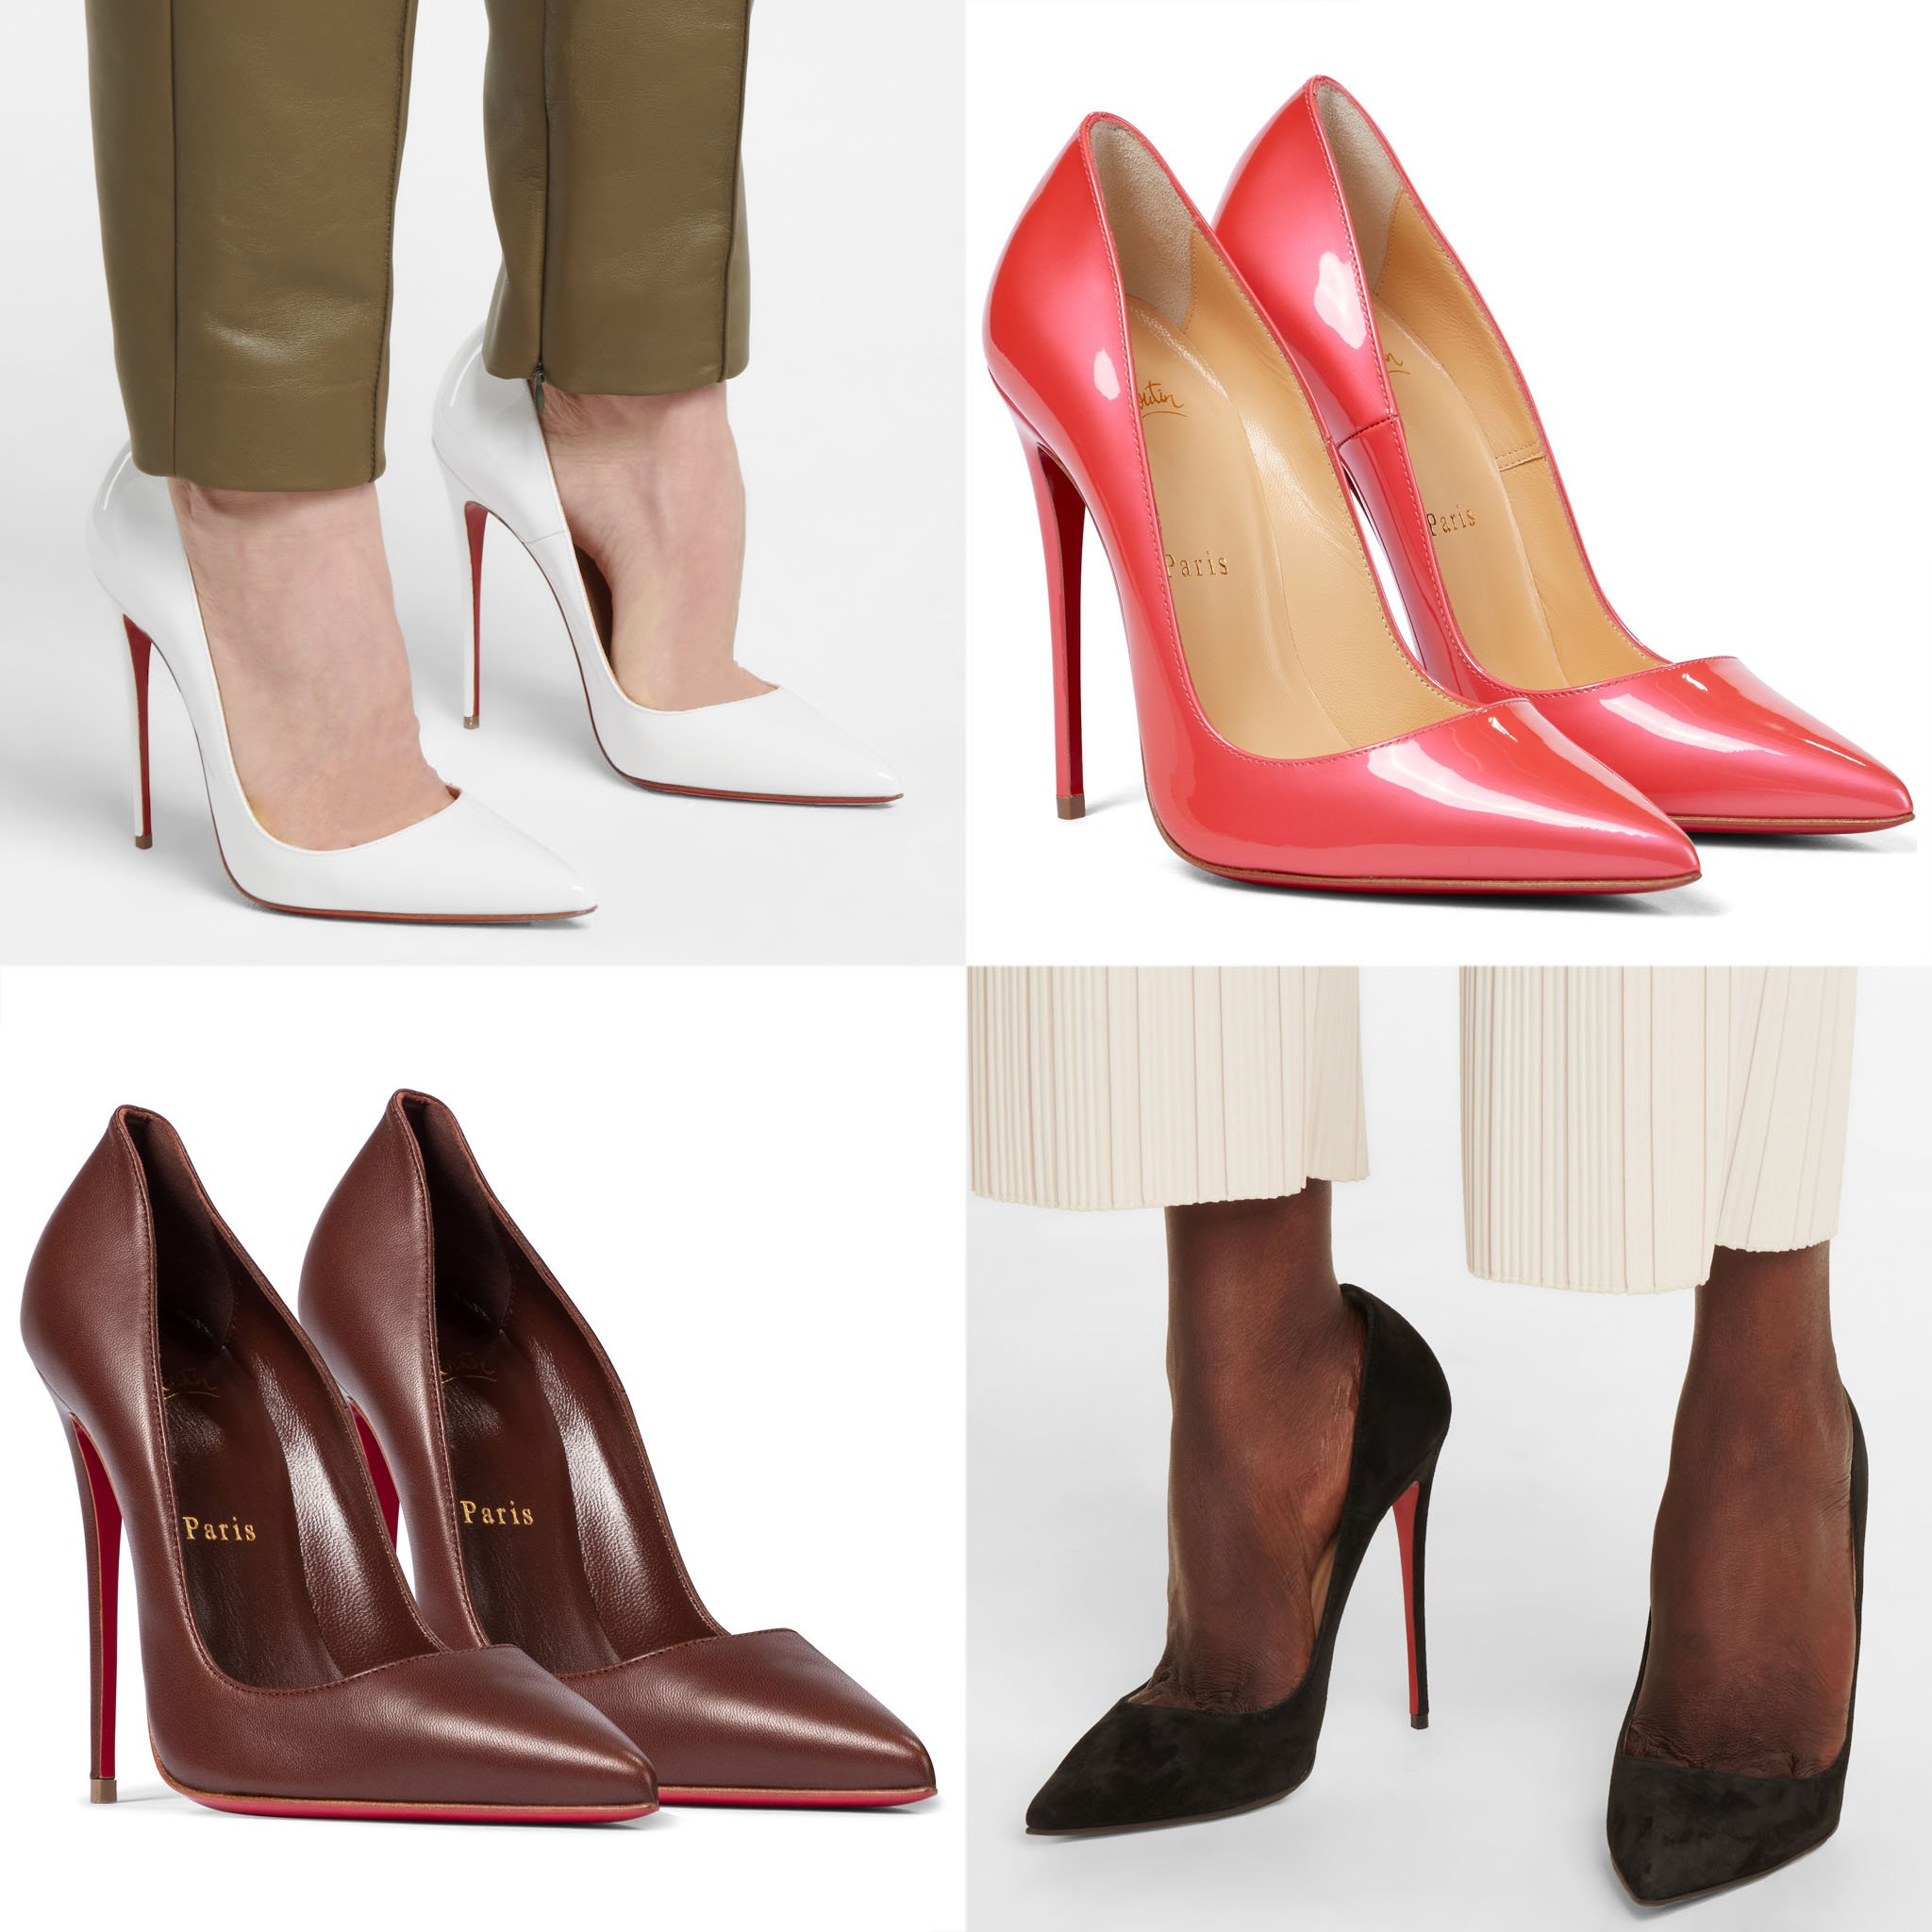 The So Kate is perfect for those who are confident to walk in sky-high heels as it features 120mm heels